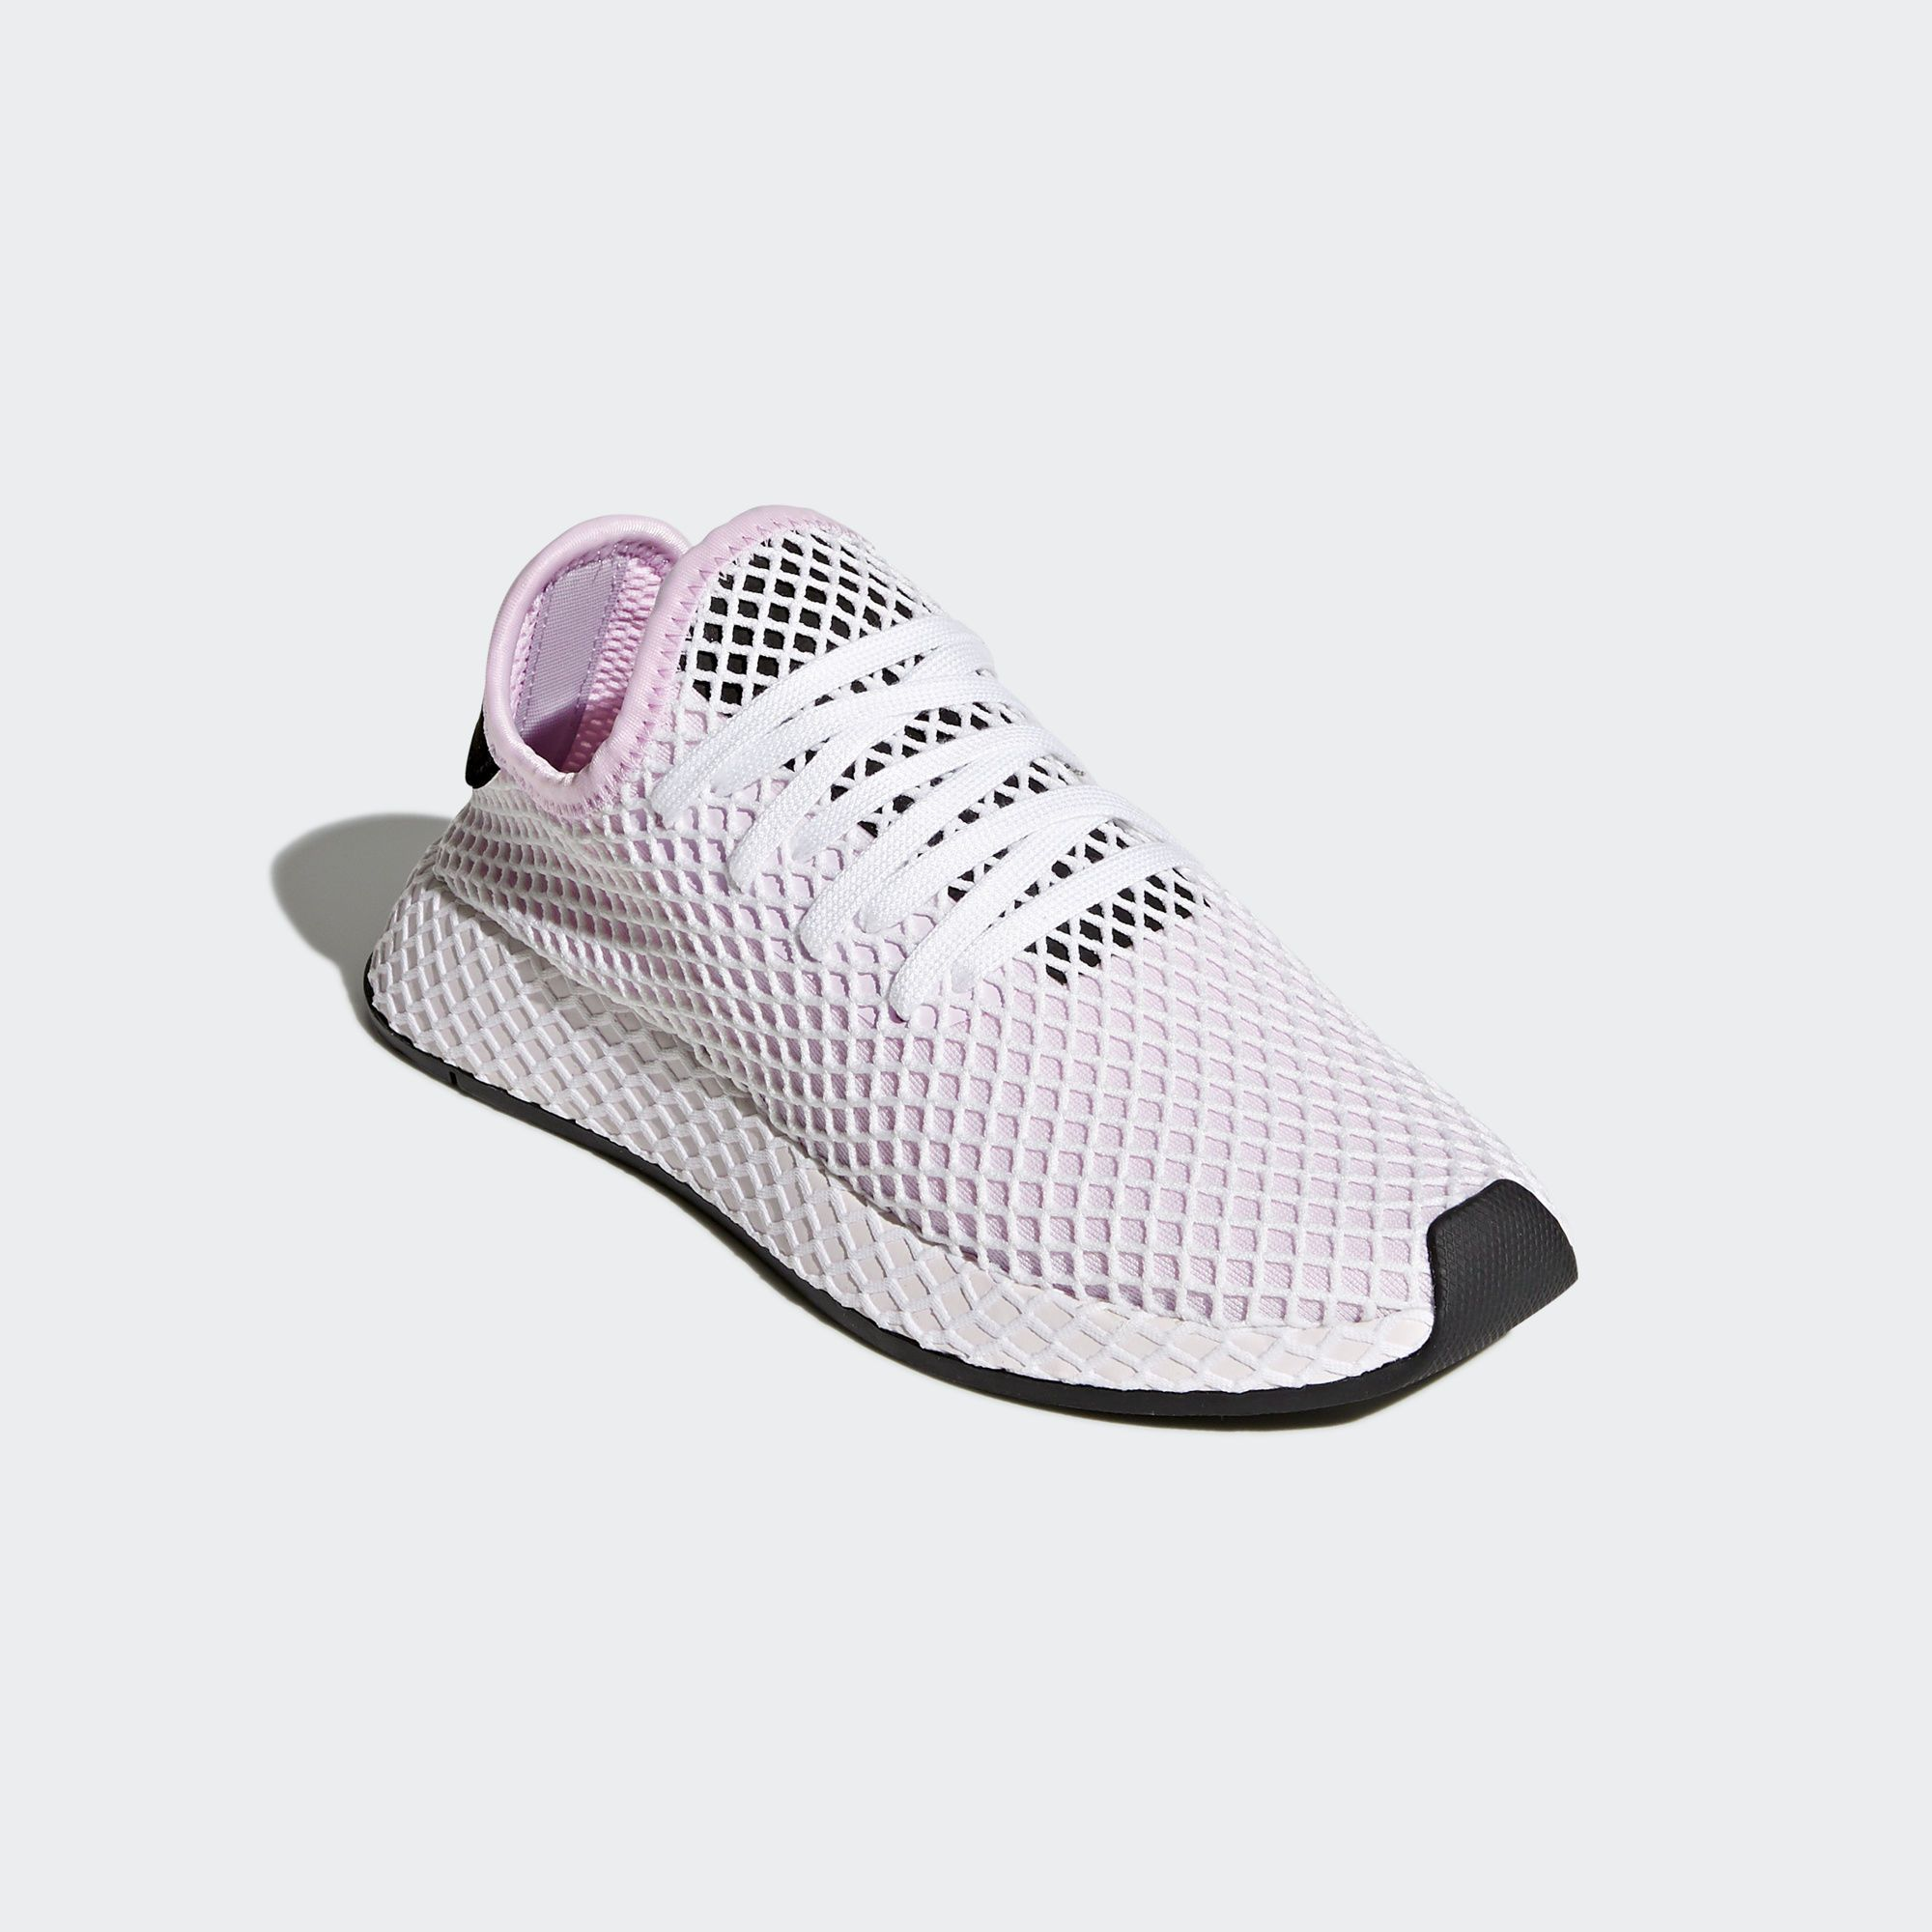 adidas Deerupt Runner Shoes - Pink  bf0ed0c3205